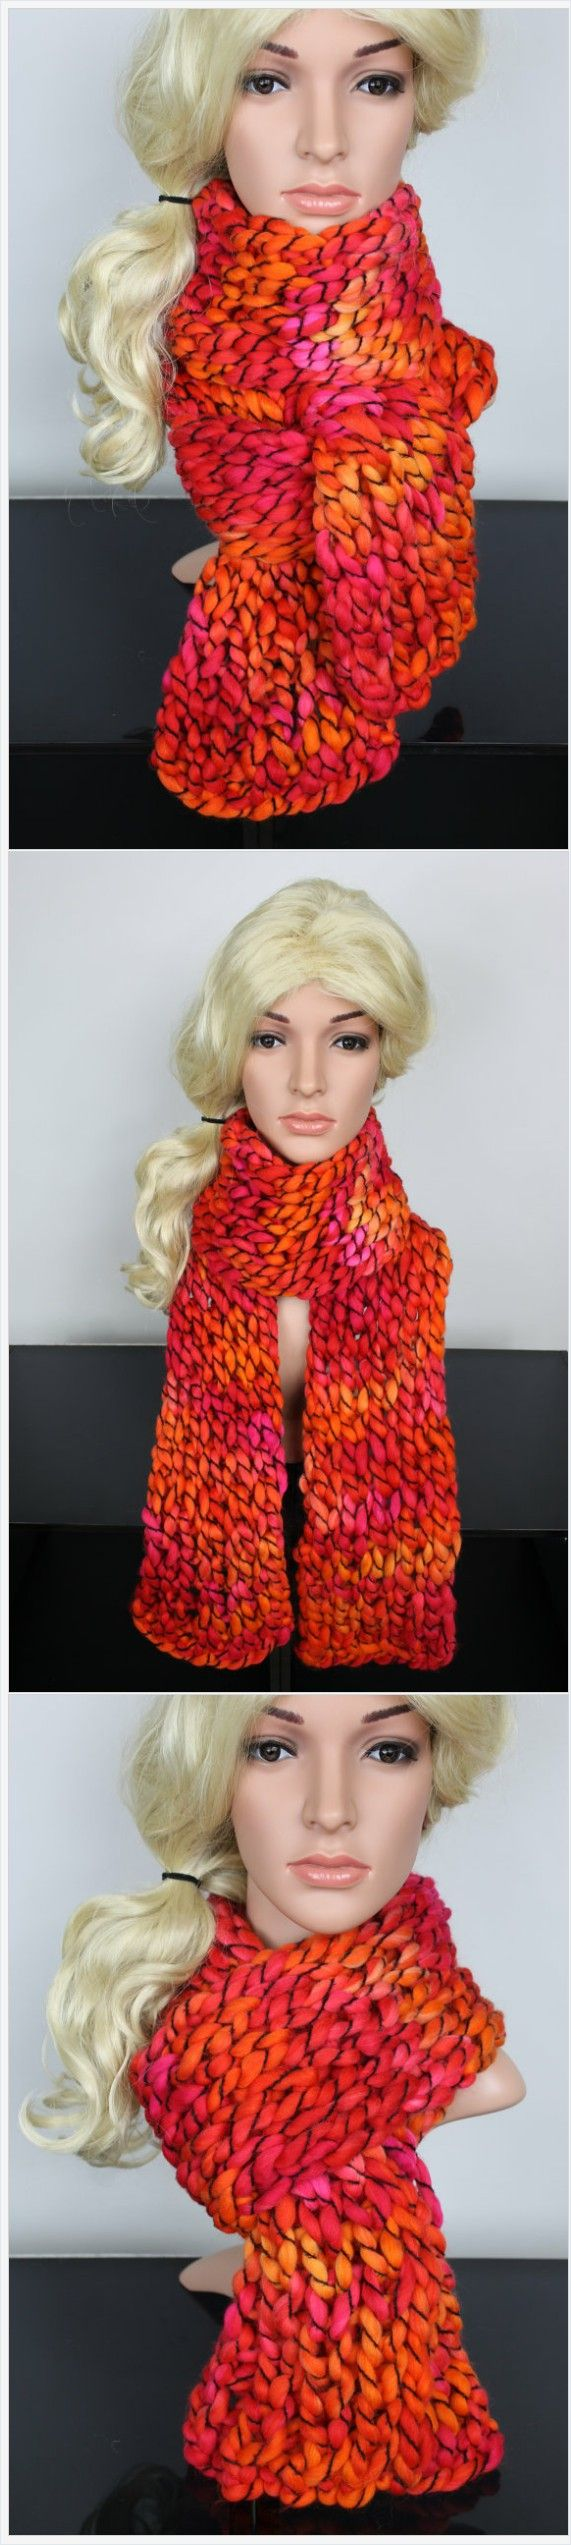 Long Chunky Knit Scarf handmade by Locotrends using finger knitting technique. It is a fantastic Winter women accessory. Perfect gift for her birthday, gift for wife, gift for a girlfriend, gift for mom or simply gift for a women who loves wearing trendy fashion accessories. Multicolored shades of the yarn create unique experience and therefore no two scarves can ever be the same. You can be sure you will get one of a kind scarf! Save it now!